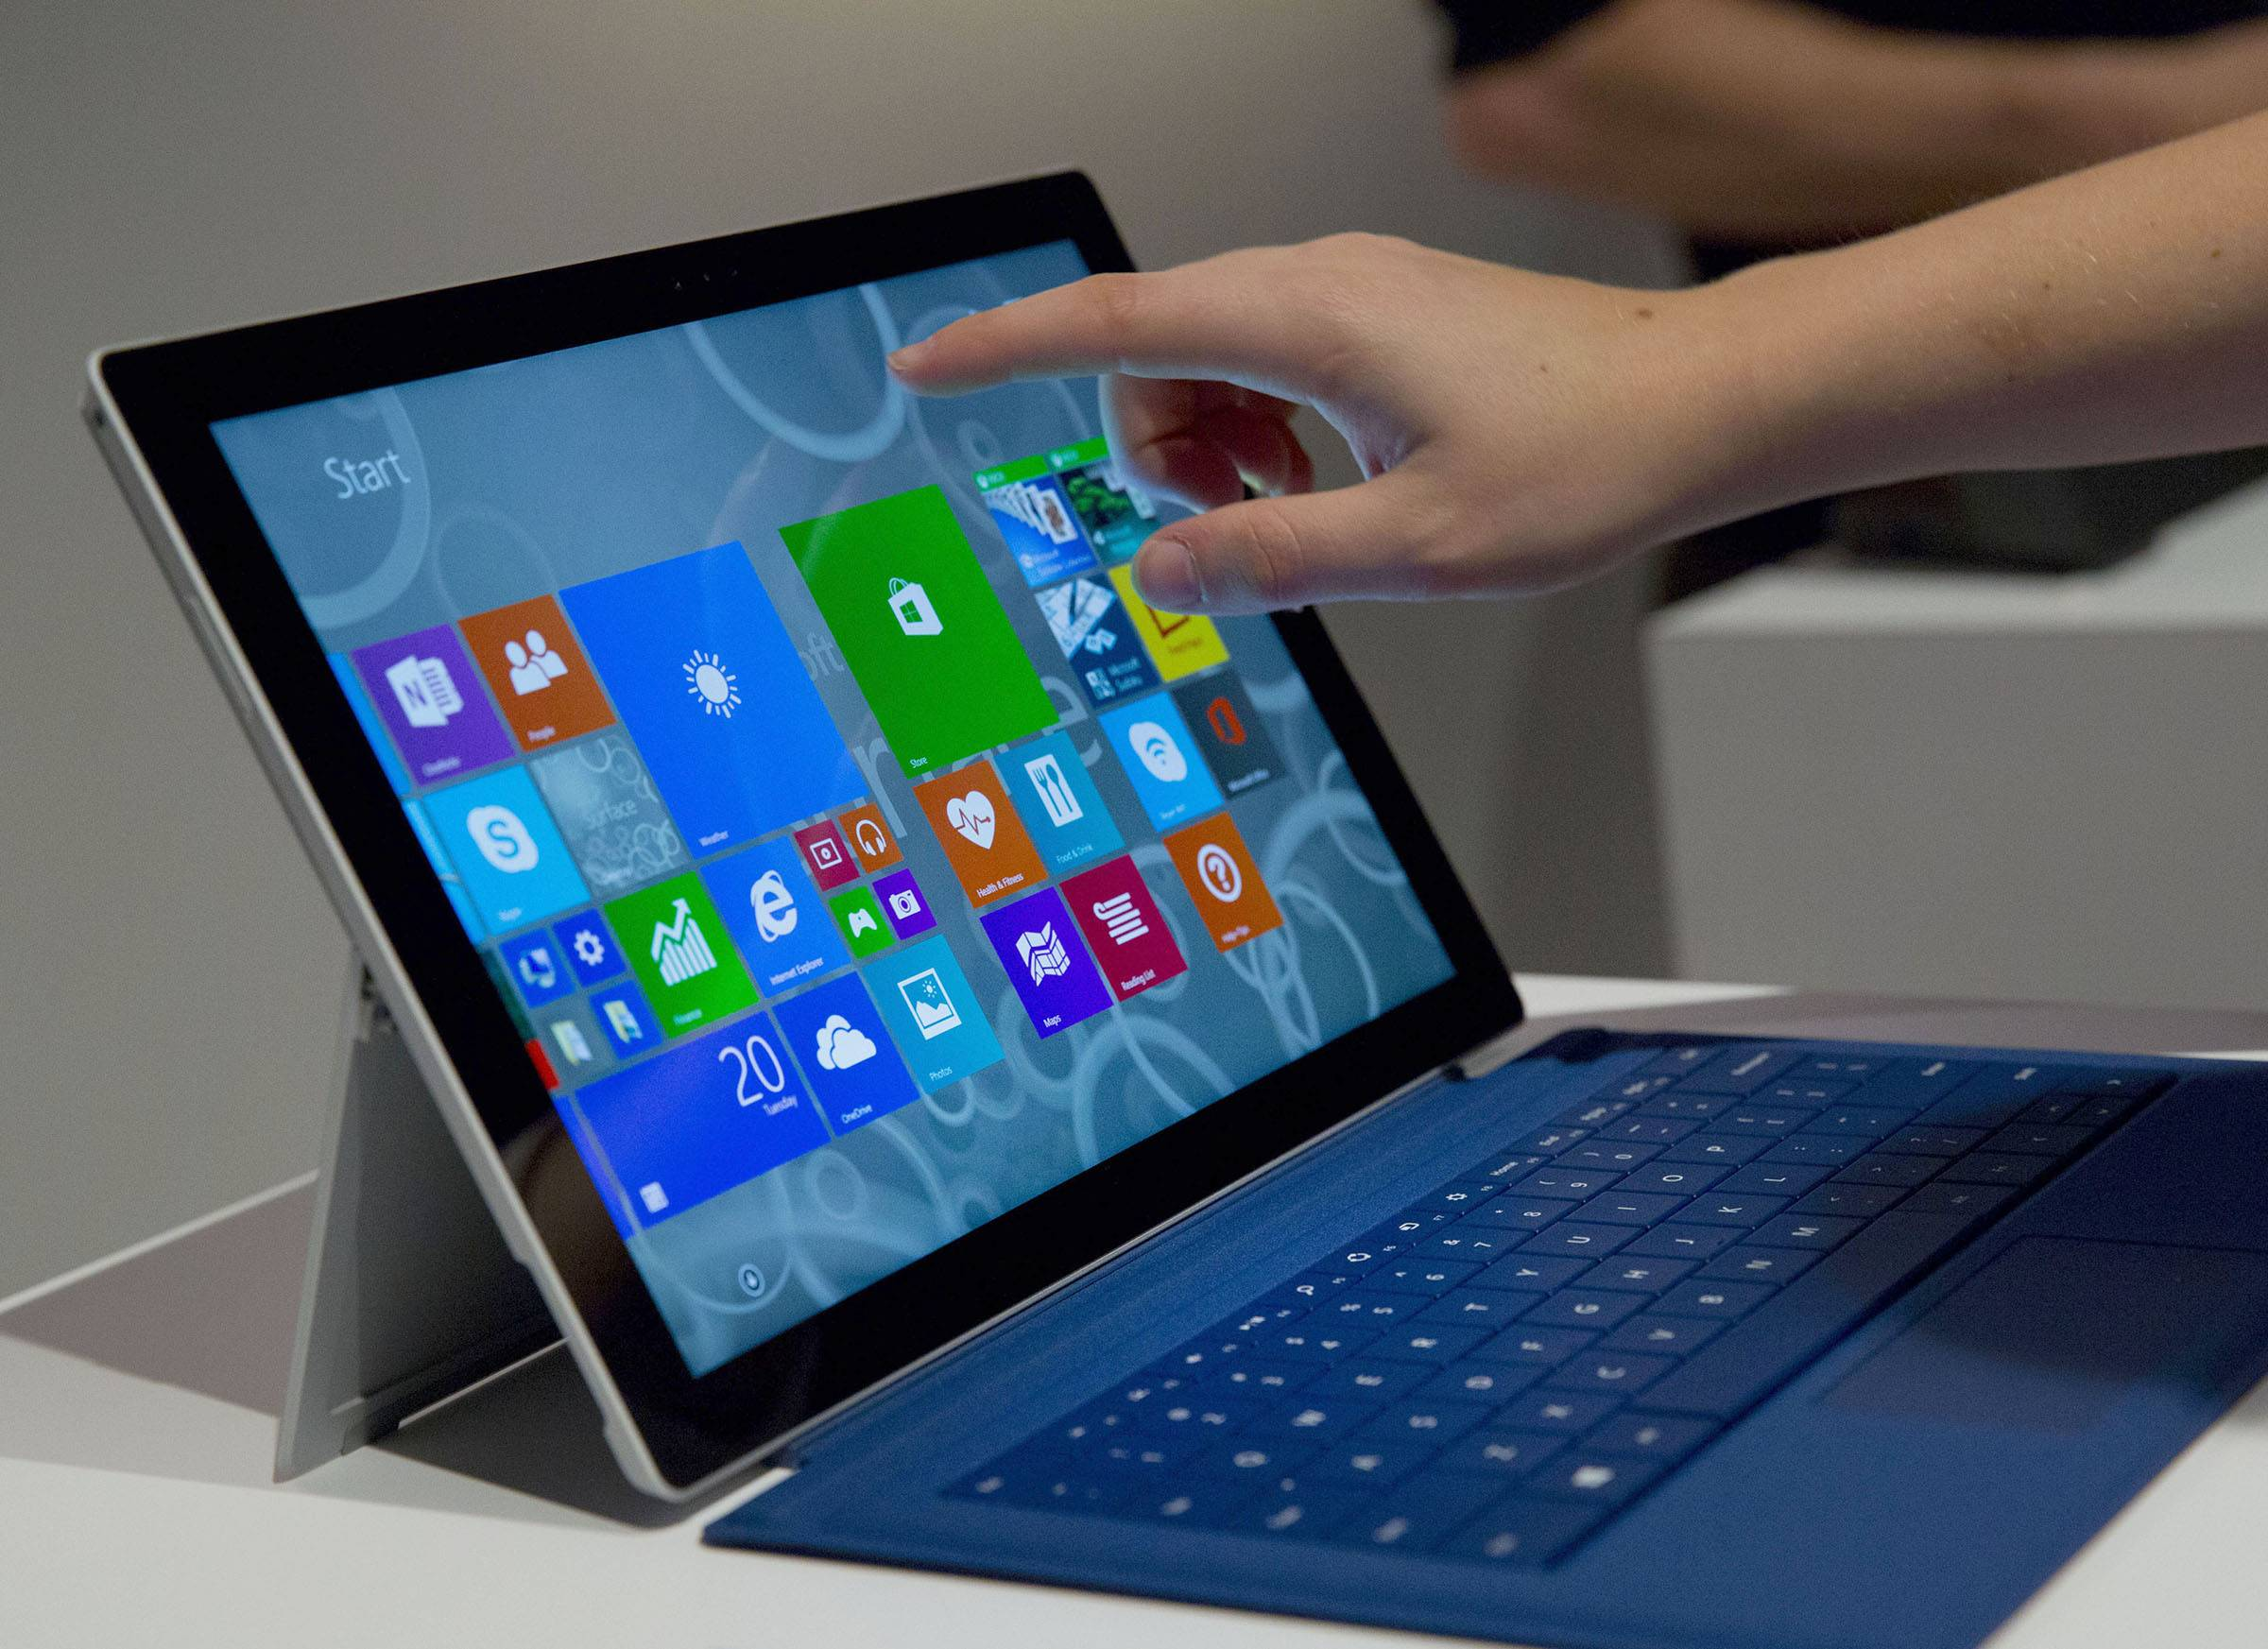 The larger-screen Surface tablet is thinner and faster than the previous Surface Pro model.